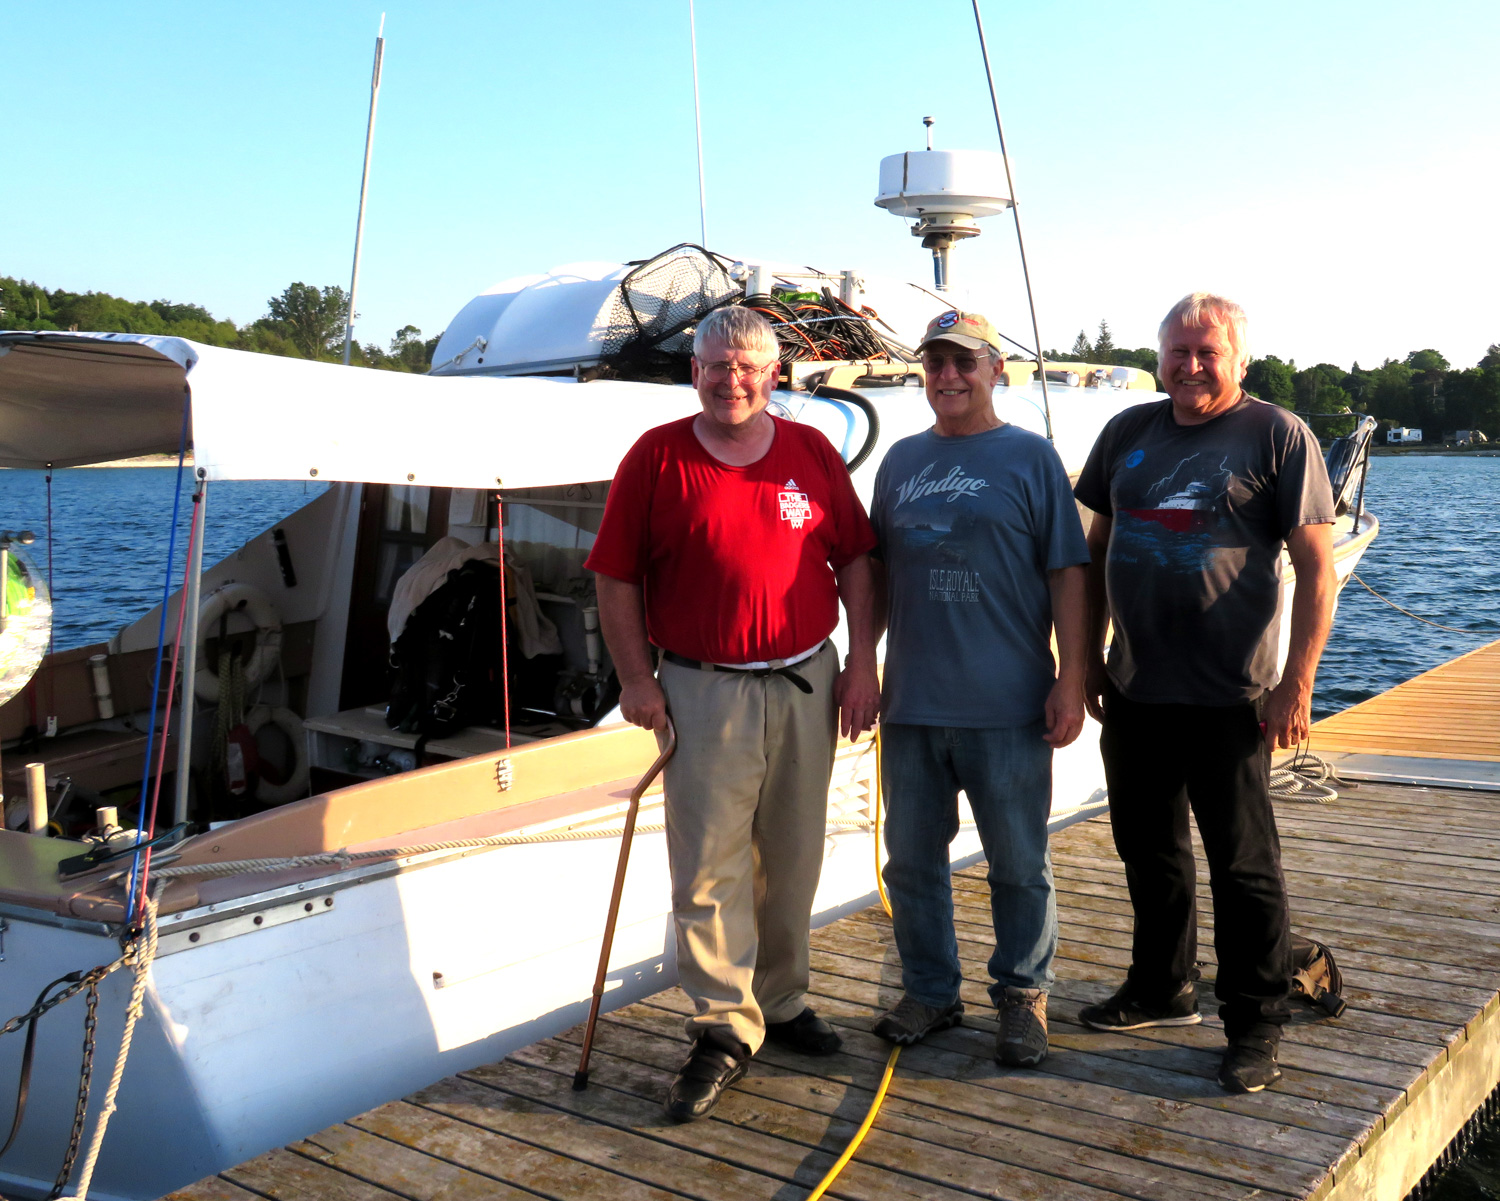 The international wreck hunting team of (left to right) Jerry Eliason, underwater electronics wizard; Ken Merryman, licensee, boat operator and underwater videographer; and Cris Kohl, maritime historian and diver.